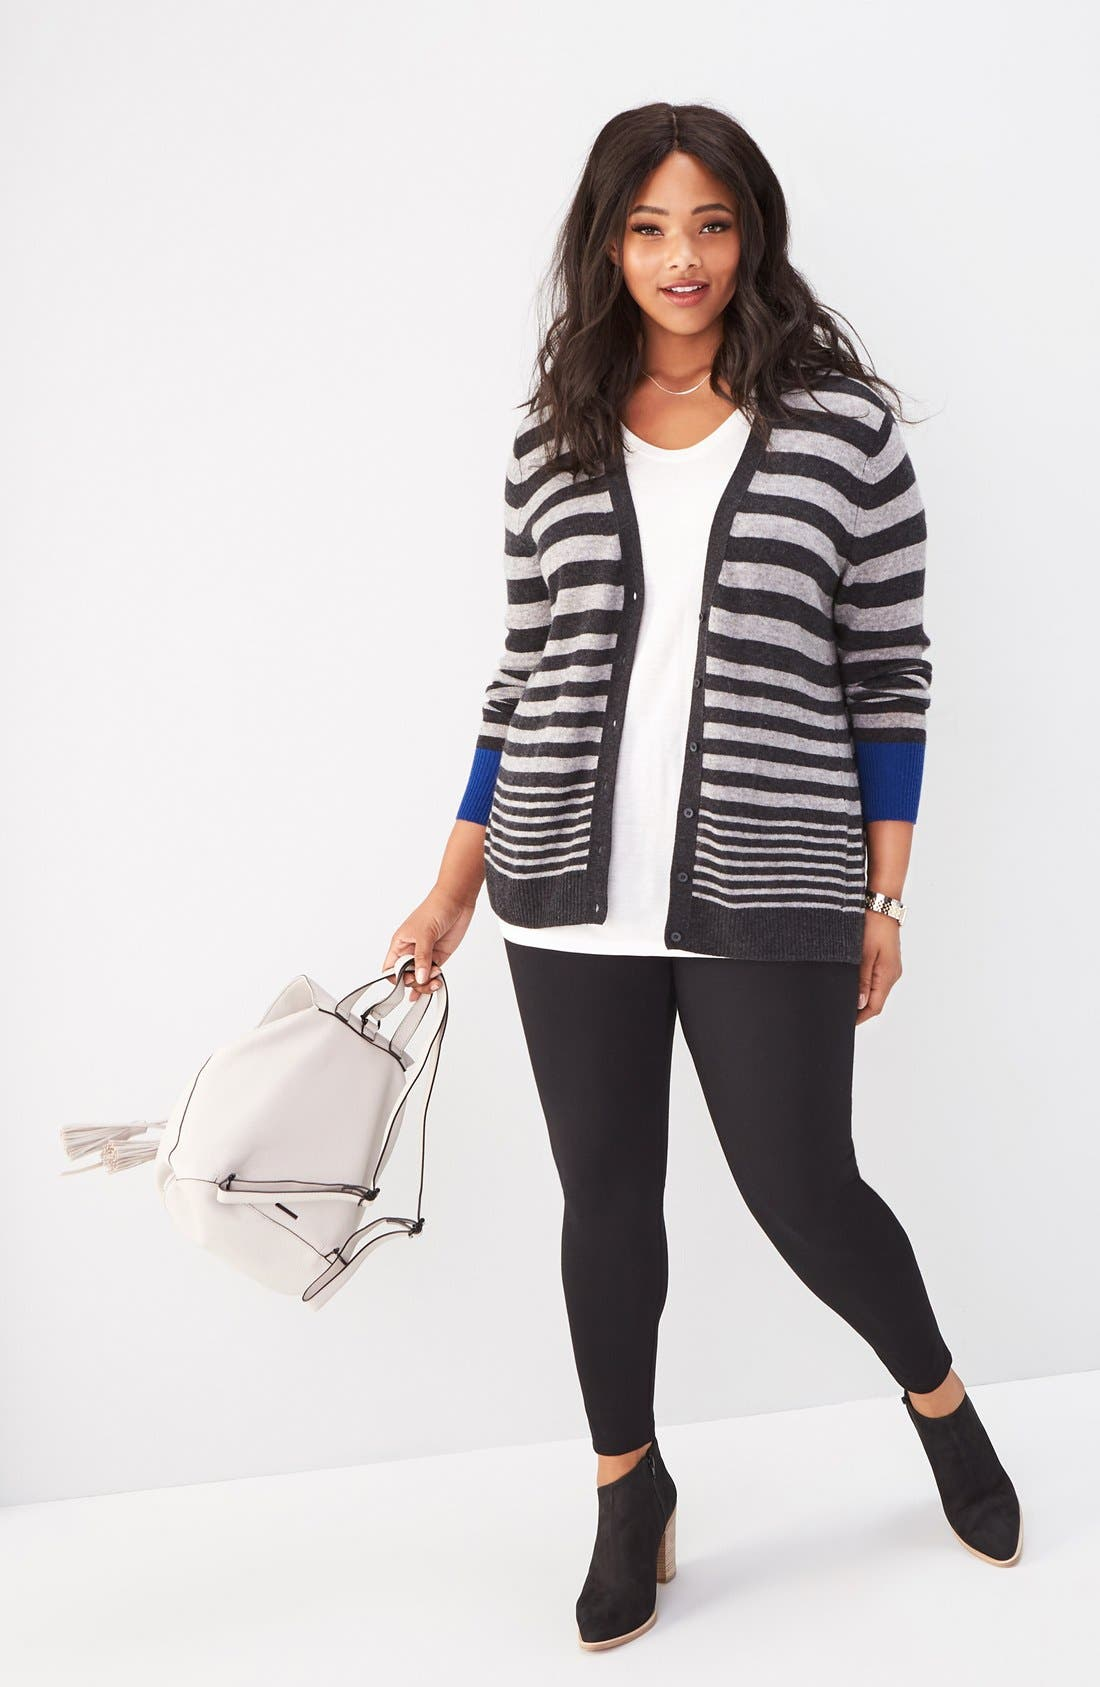 Sejour Cardigan & Leggings Outfit with Accessories (Plus Size)